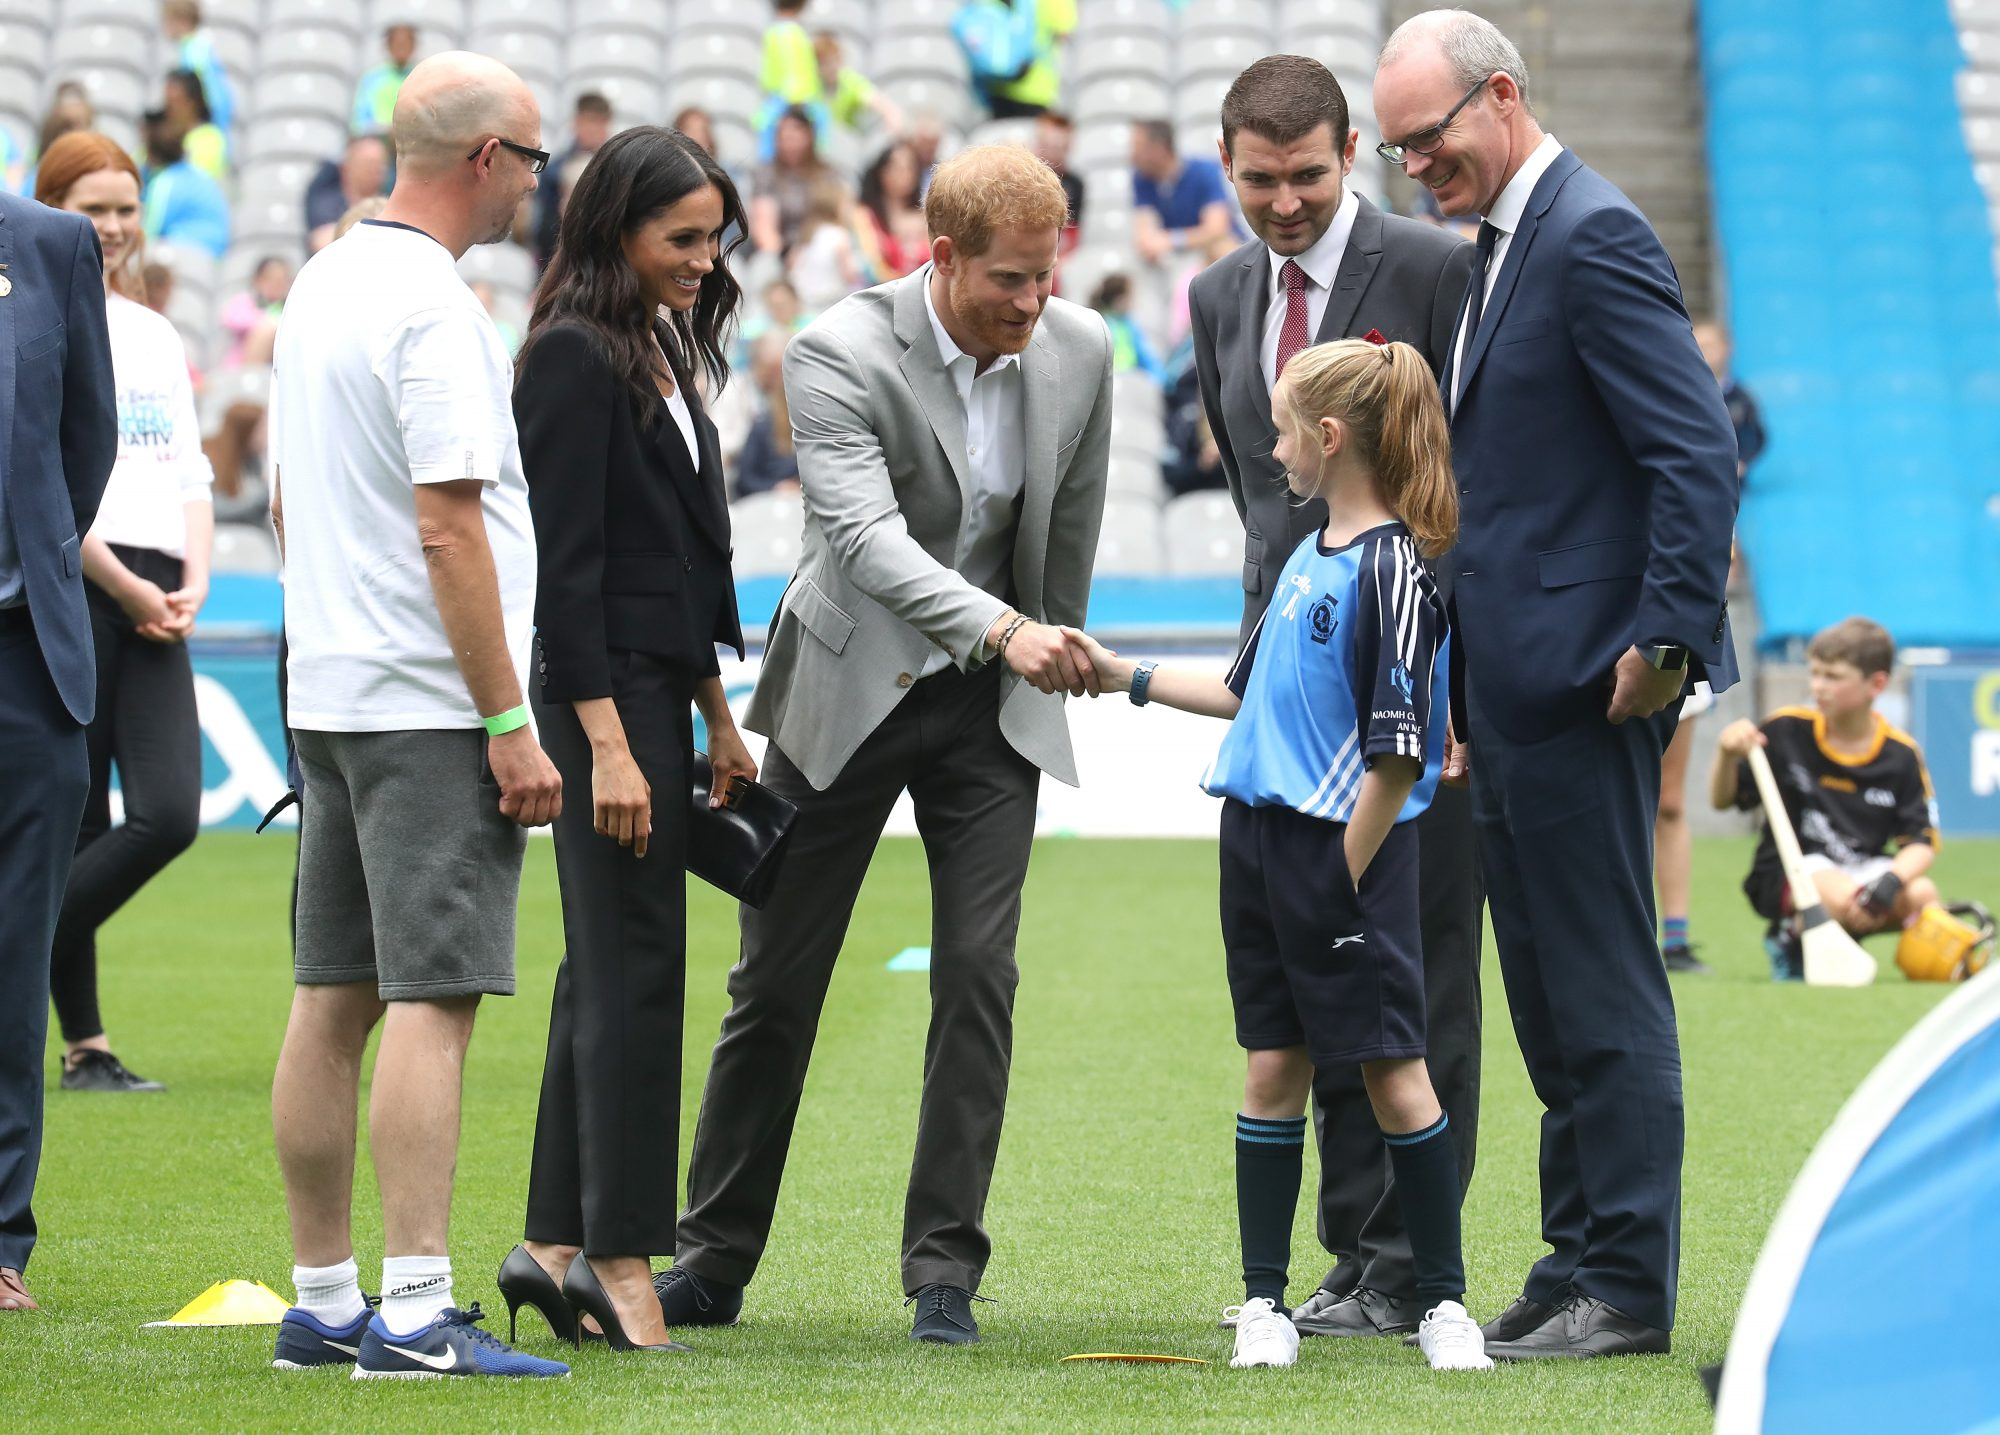 prince-harry-kids.jpg